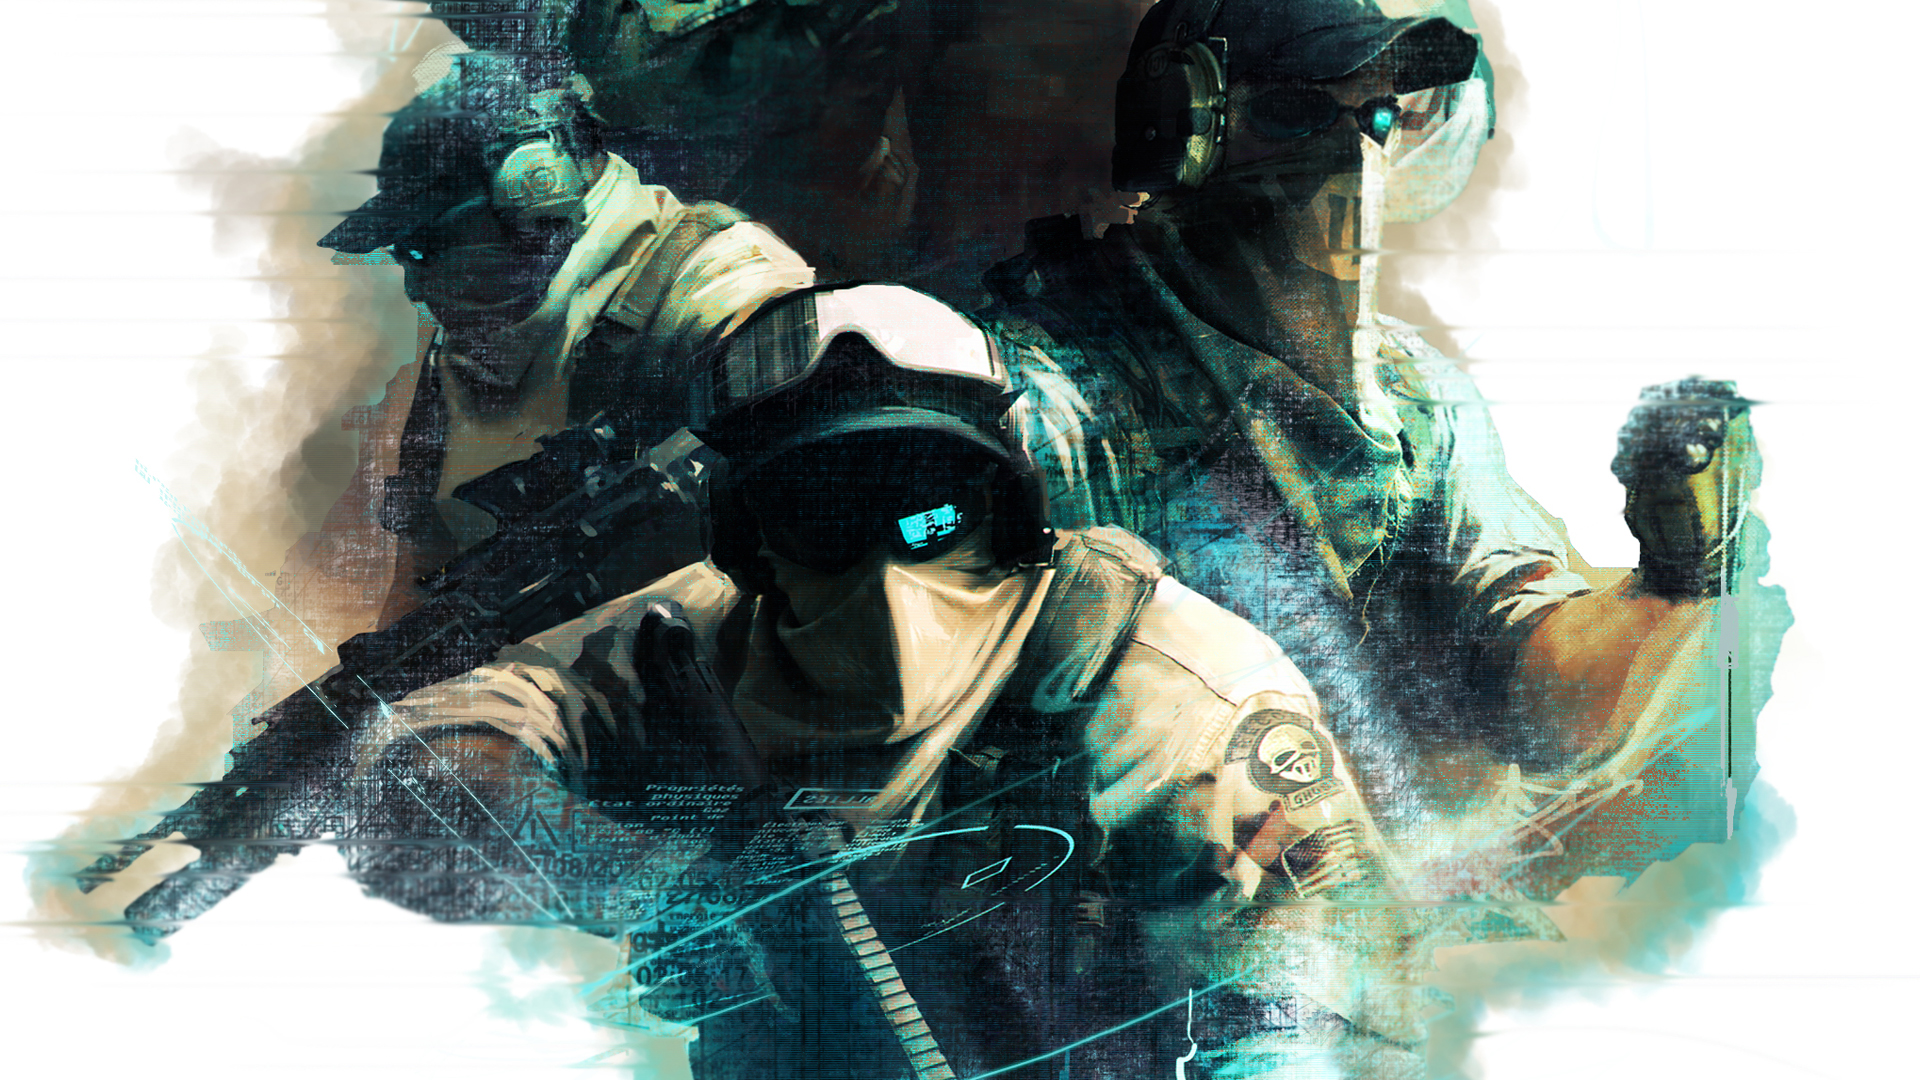 tom clancys ghost recon future soldier full hd wallpaper